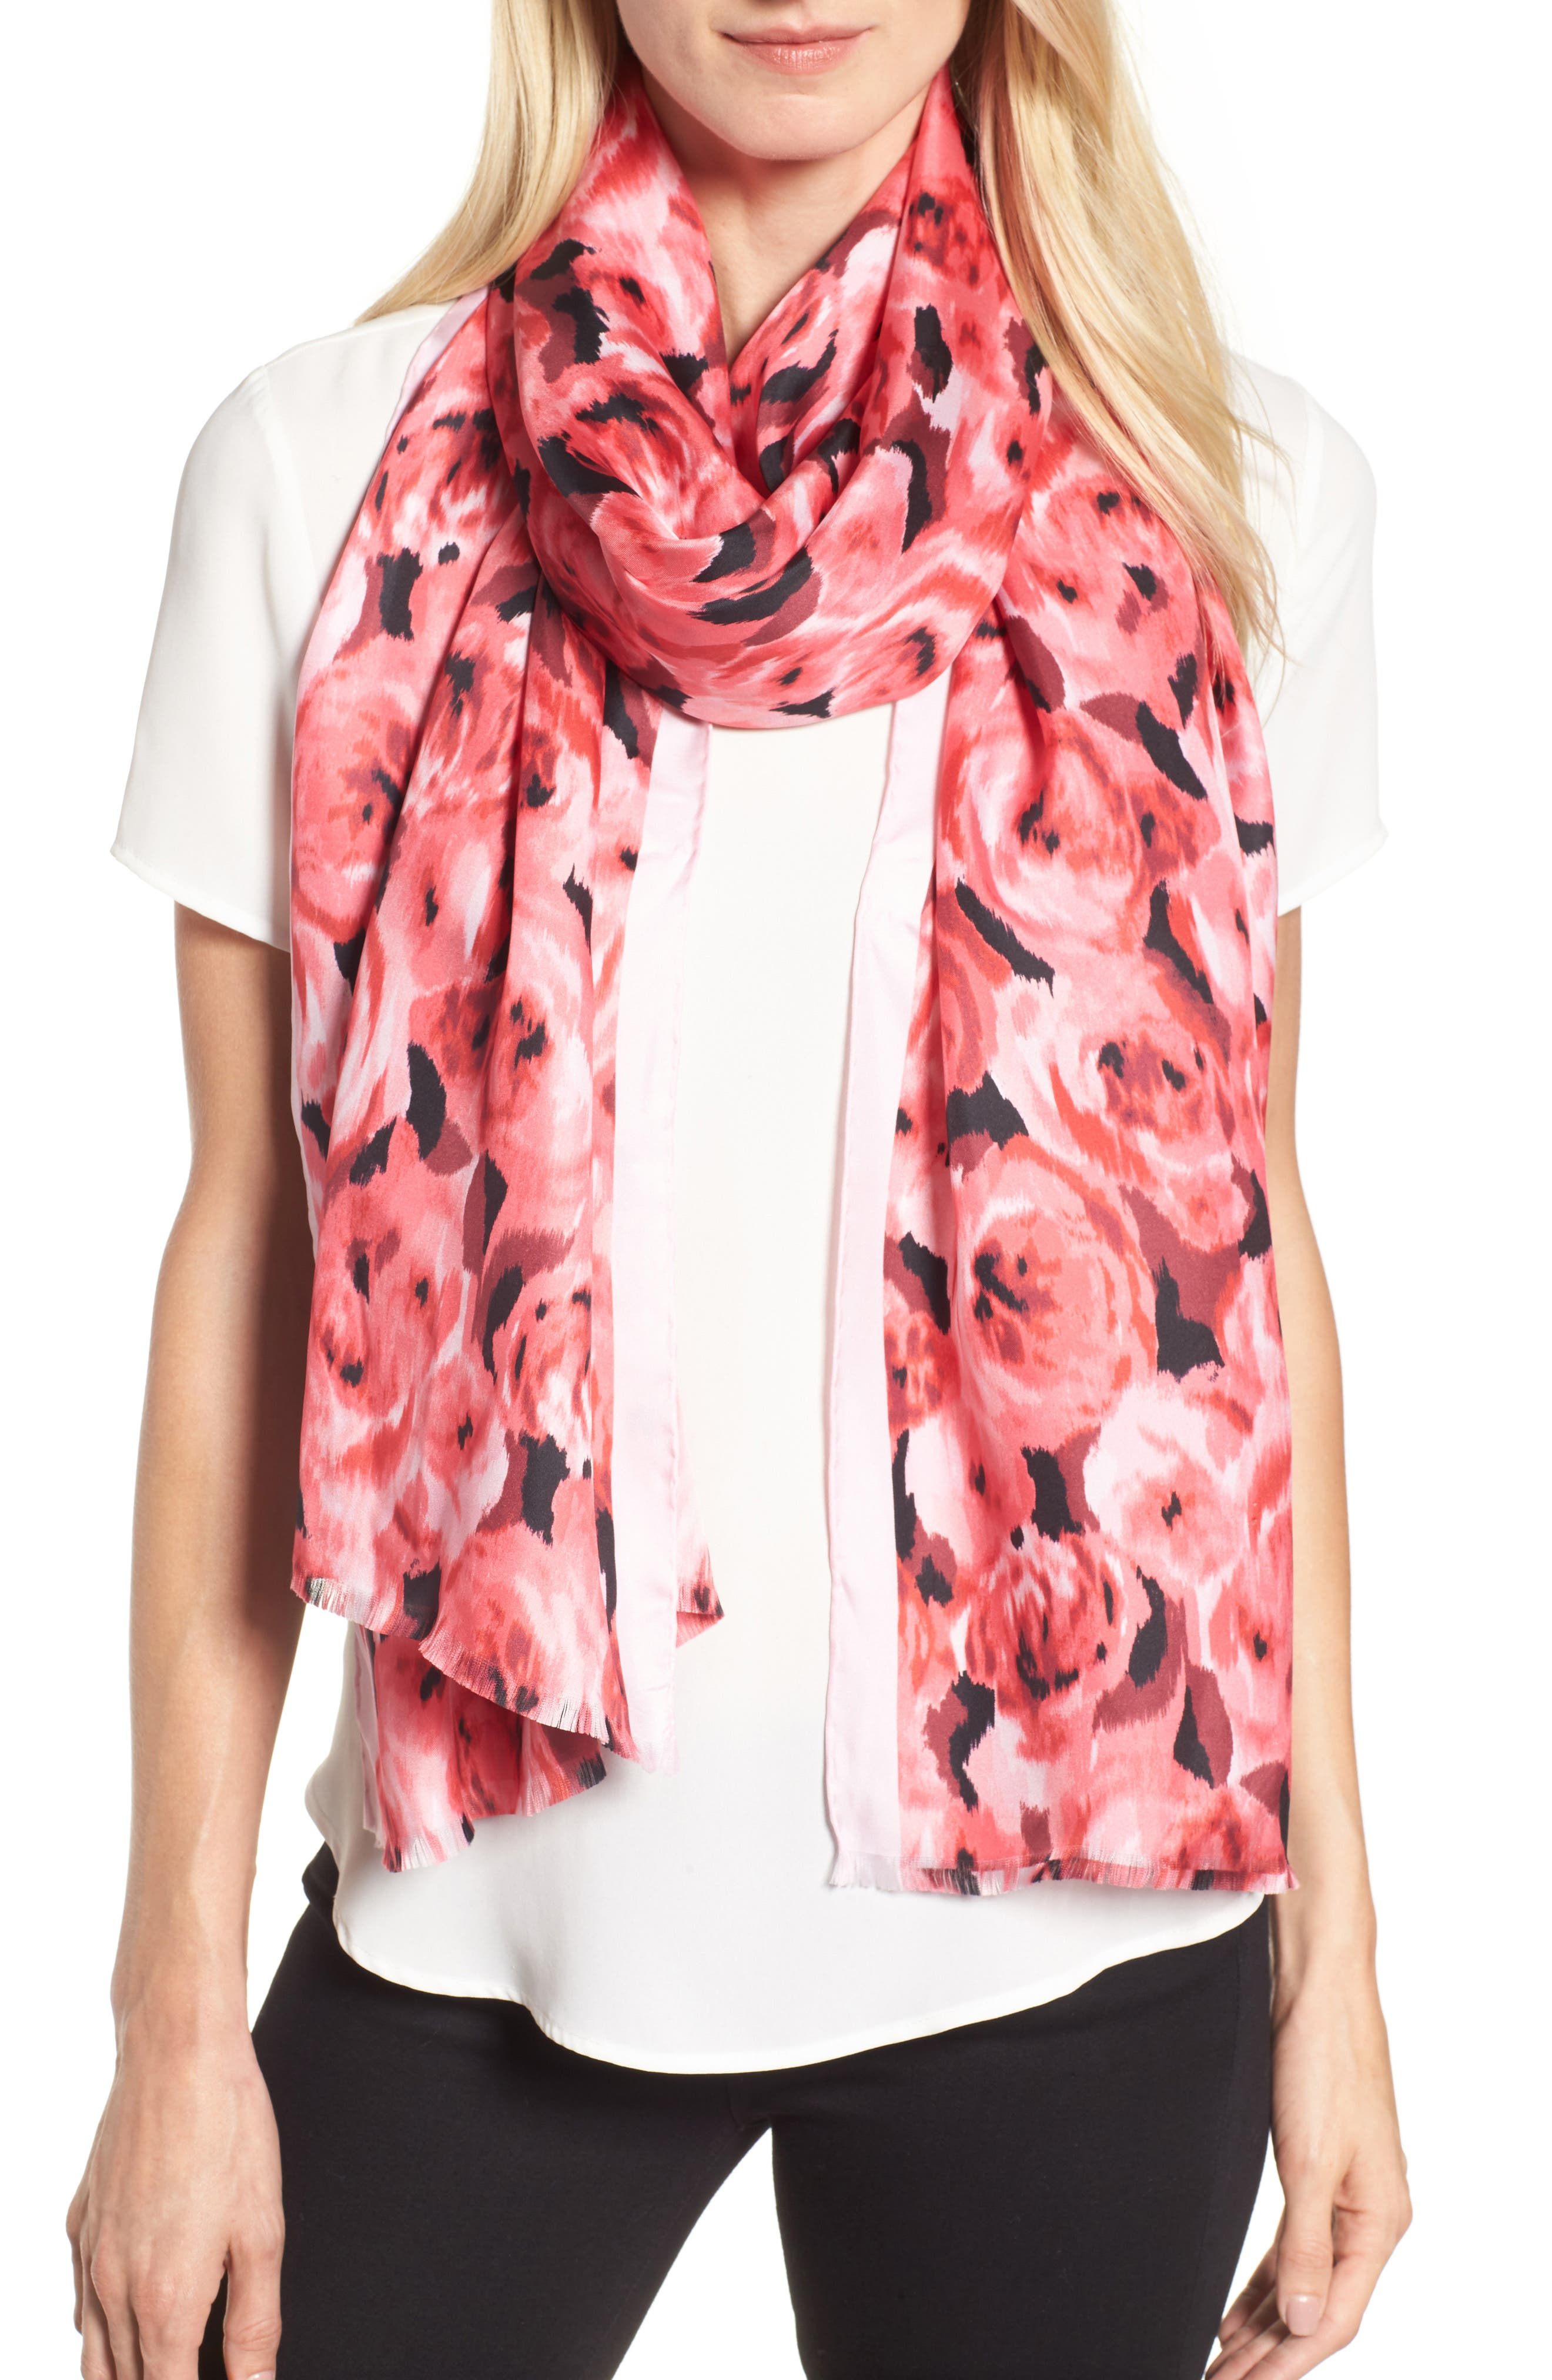 tapestry rose silk oblong scarf,                         Main,                         color, Petunia